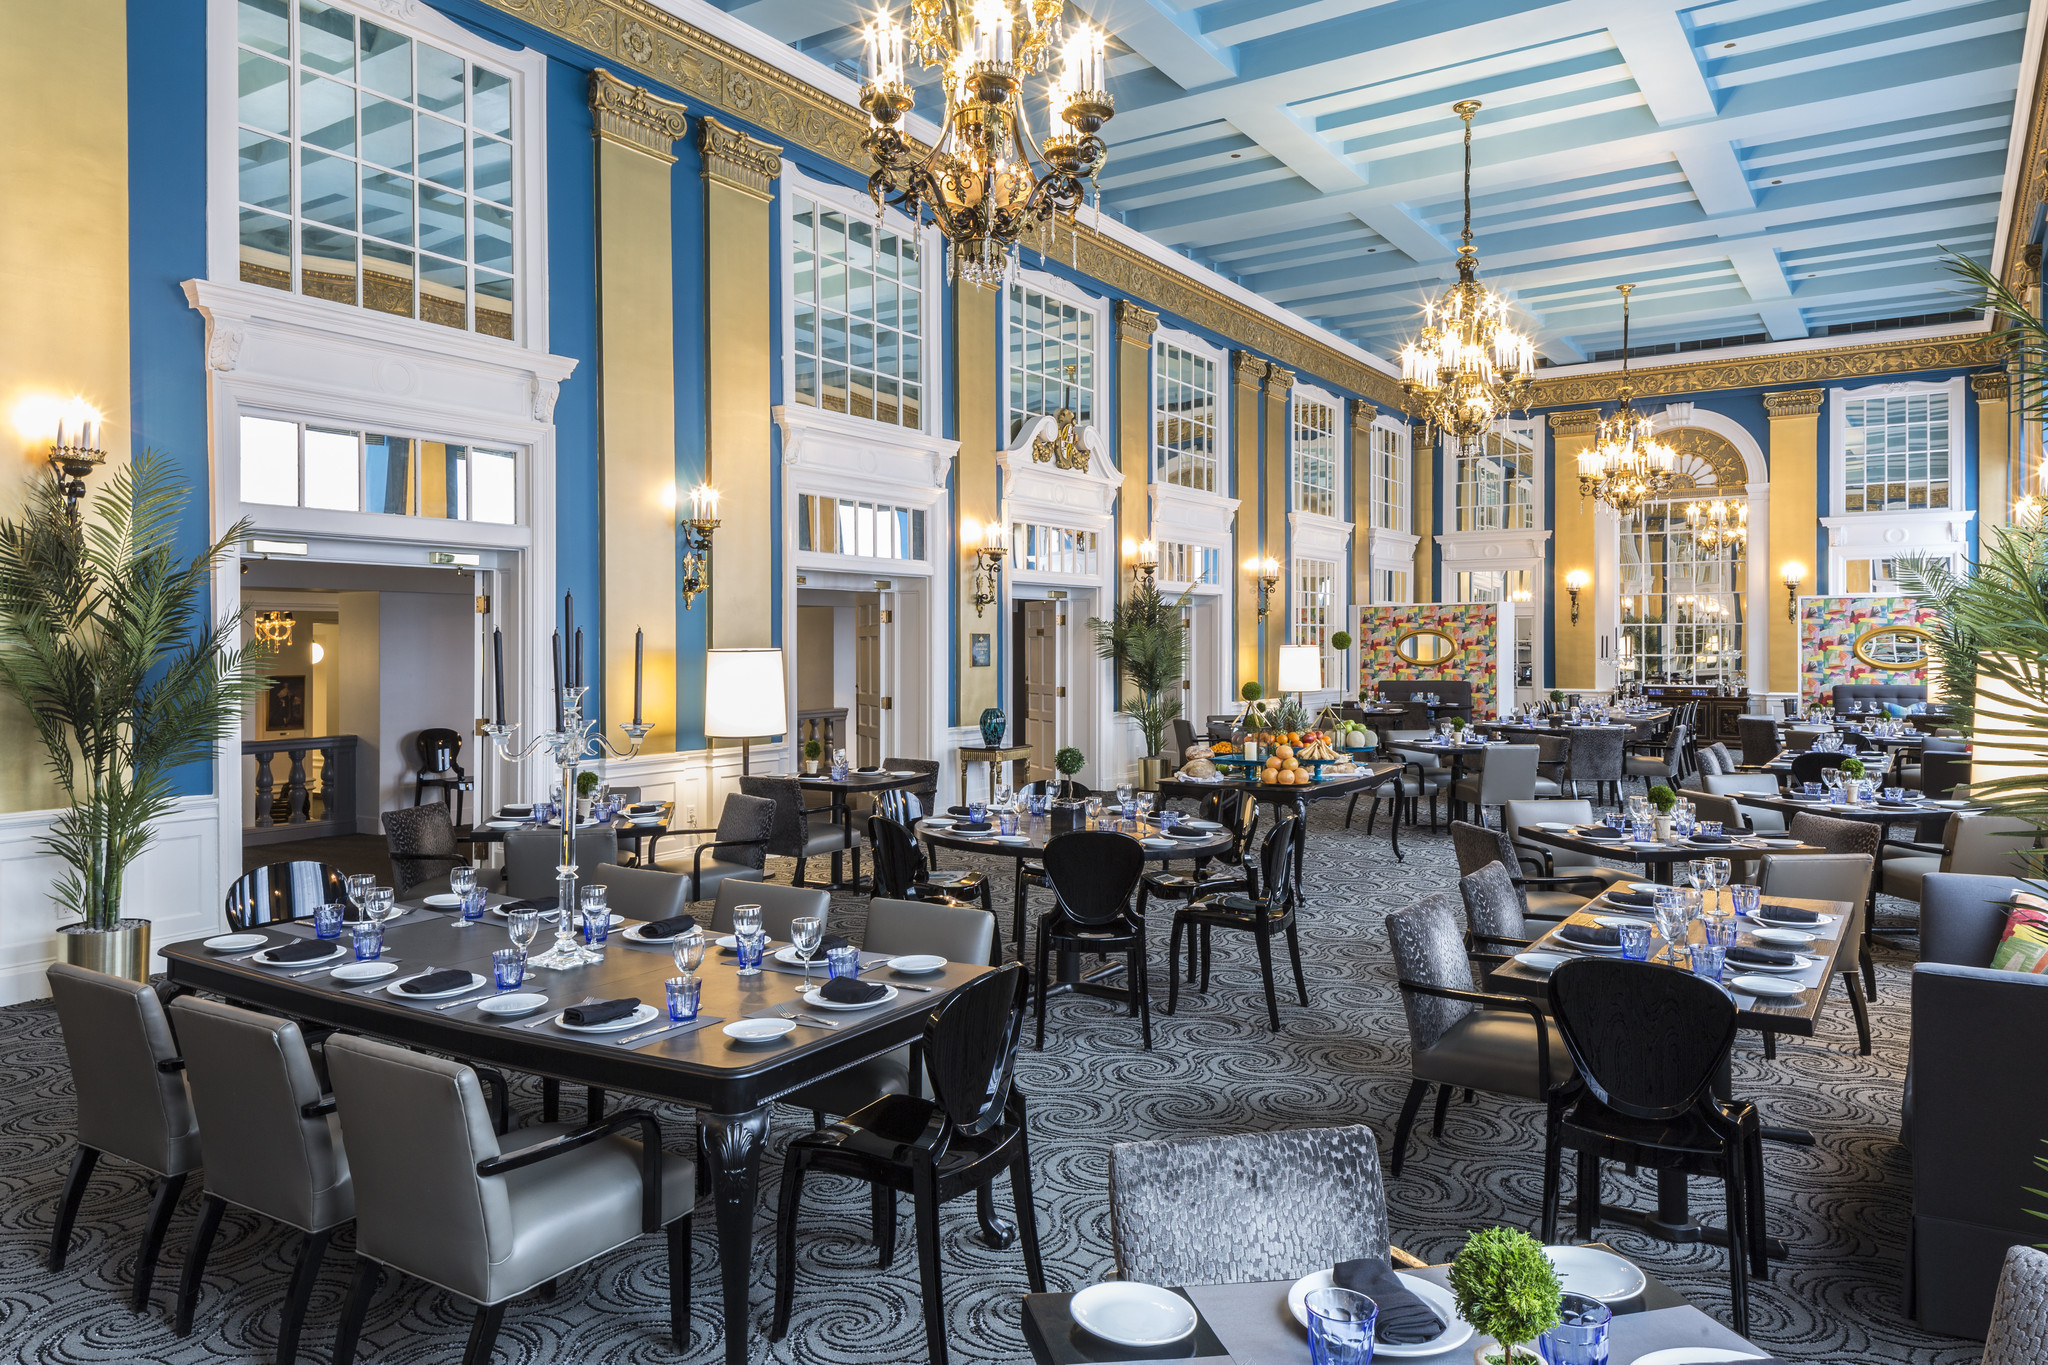 easter 2016 dining options in baltimore baltimore sun - Gray Restaurant 2016